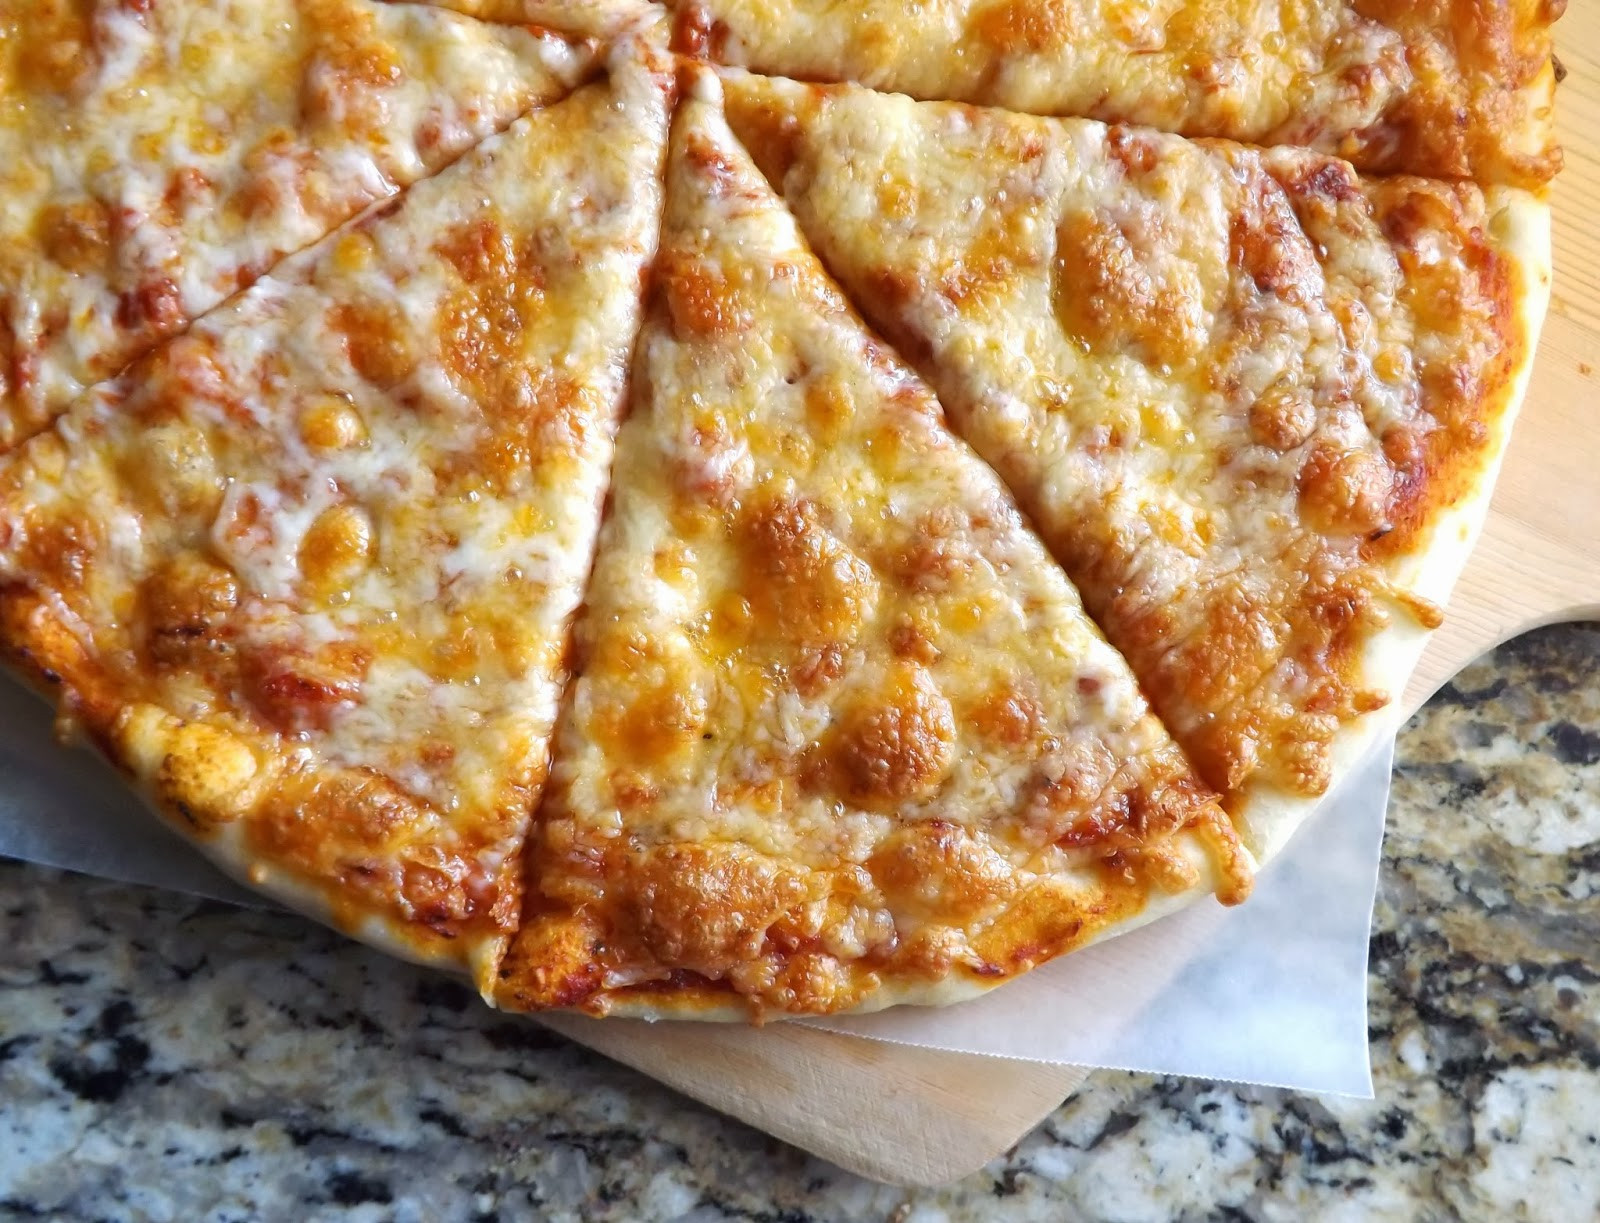 Pizza Dough With Yeast  The Bake f Flunkie Baking Powder no yeast Pizza Crust